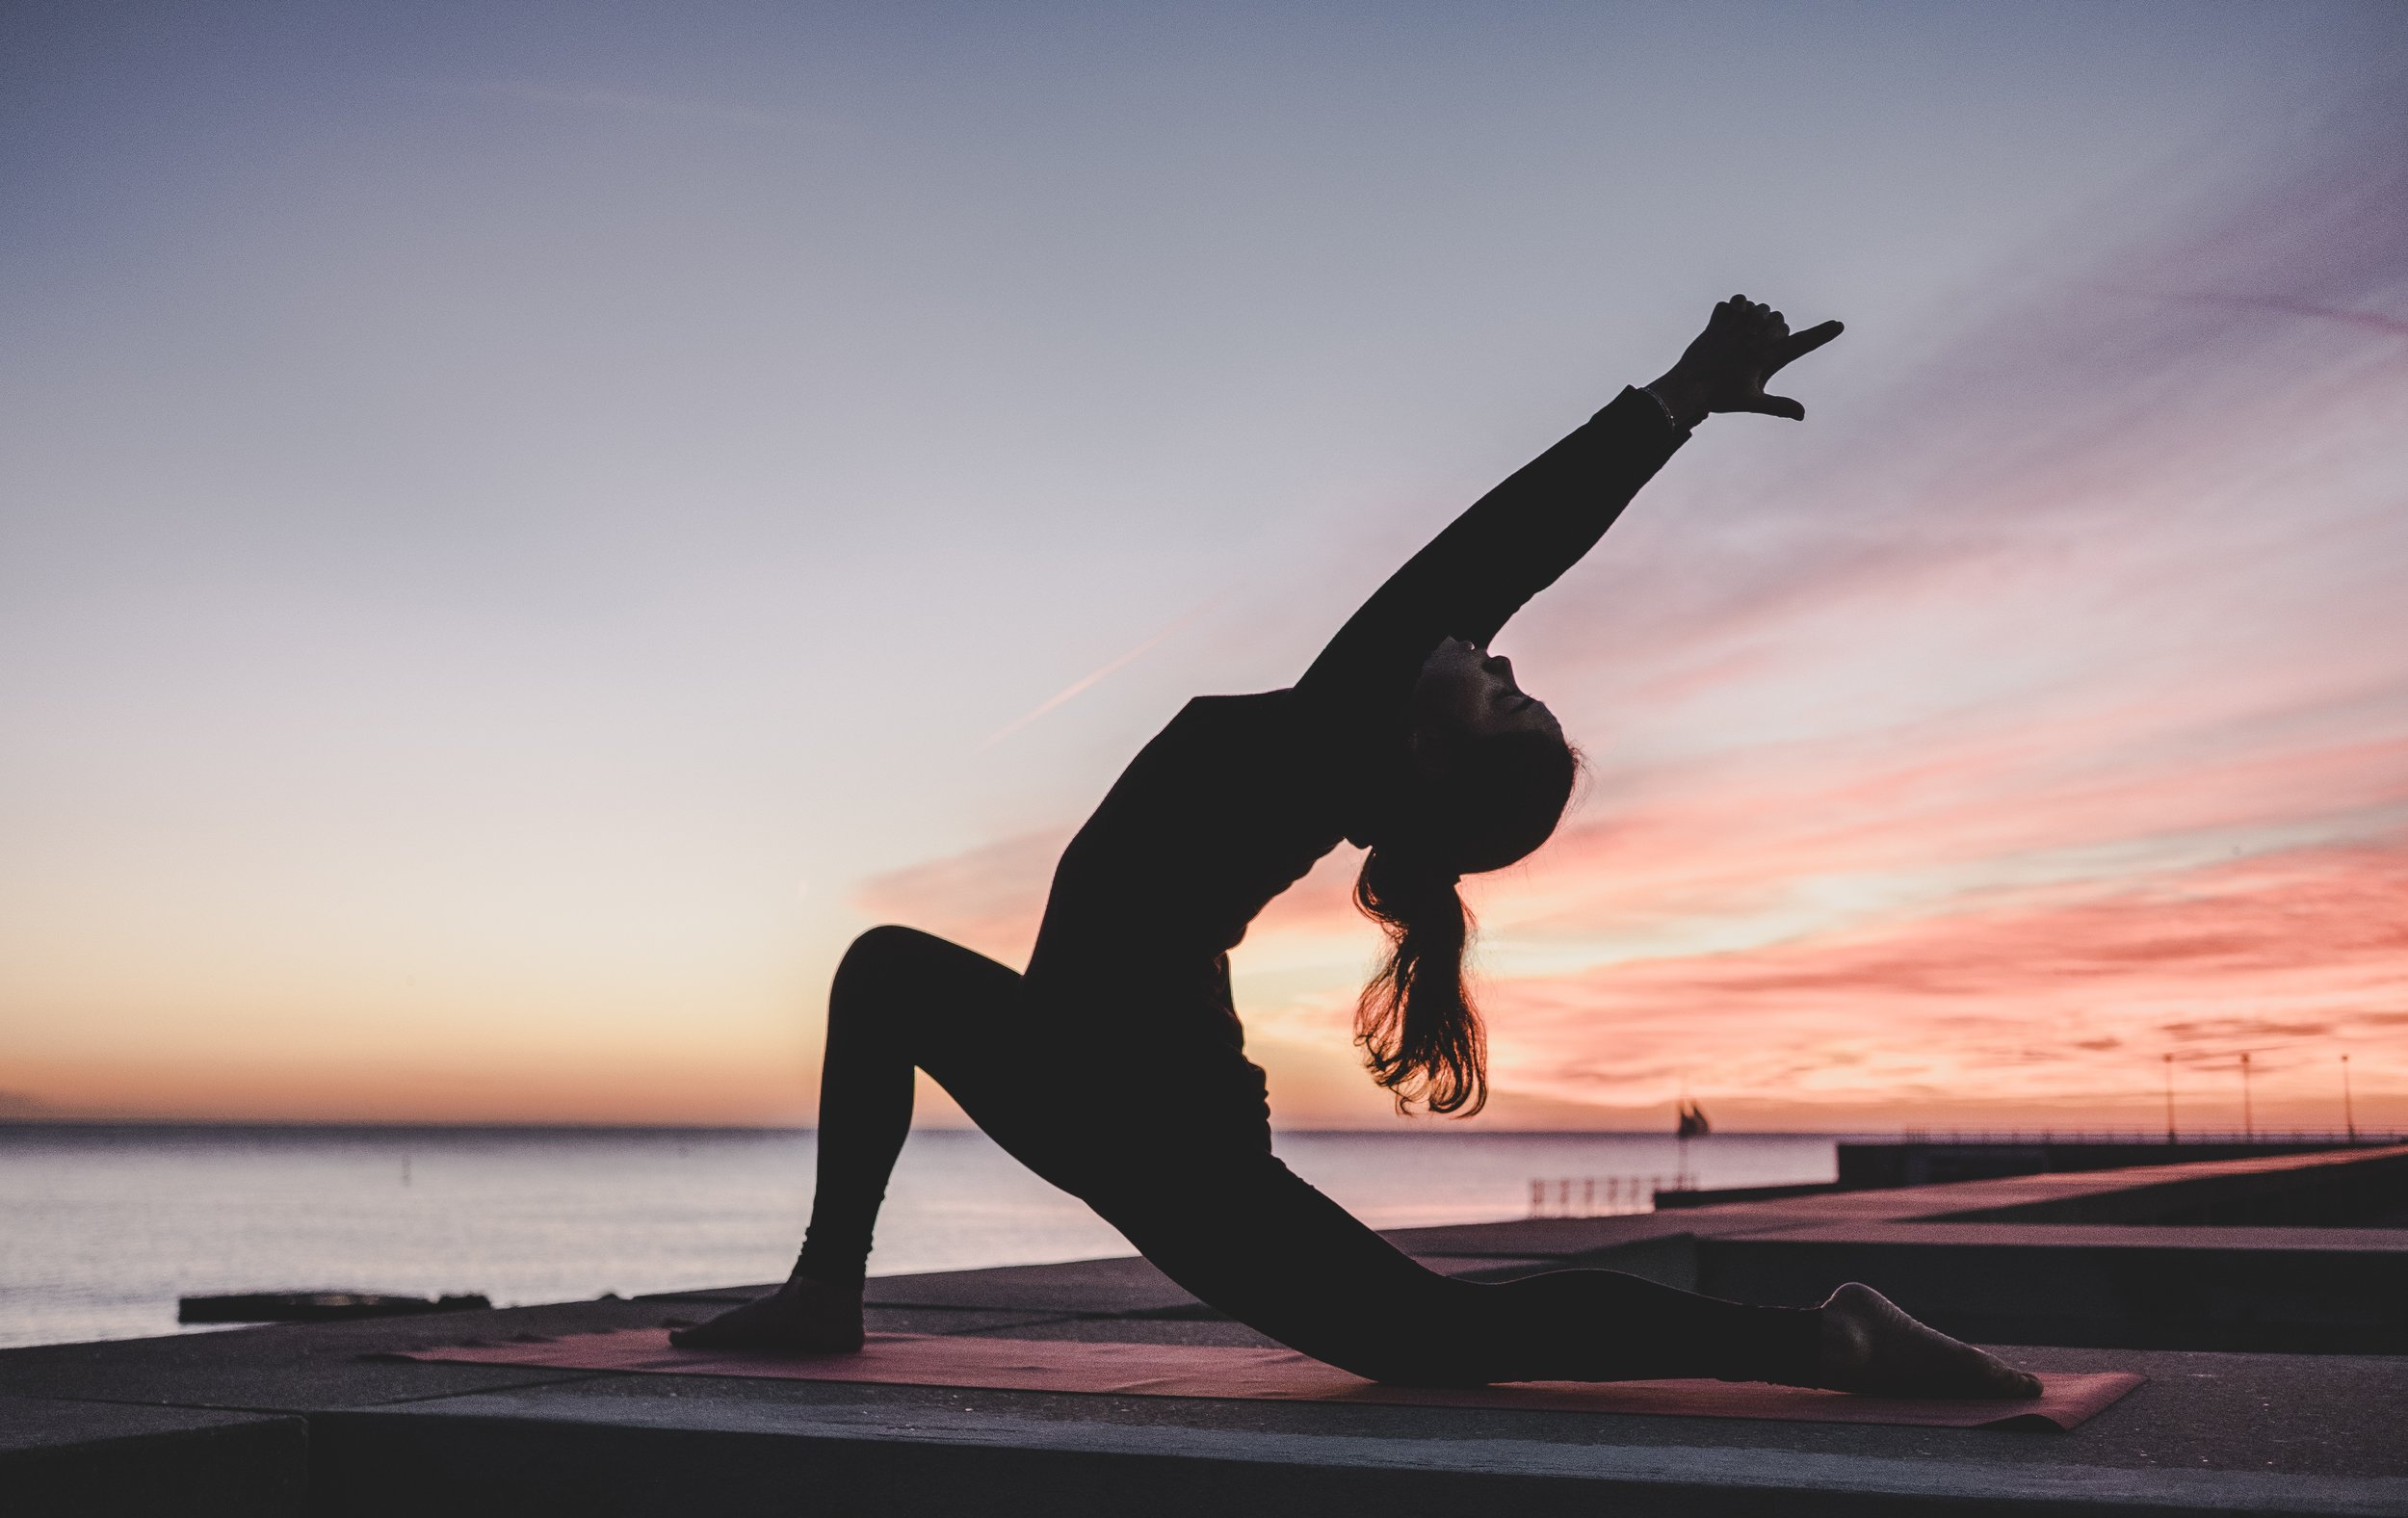 3c4806108b2d0 Join us Friday June 7th for a pop-up class with Anna Khrikheli at 5:30pm.  Just $10 to drop in to this all-levels flow class. Free for members.